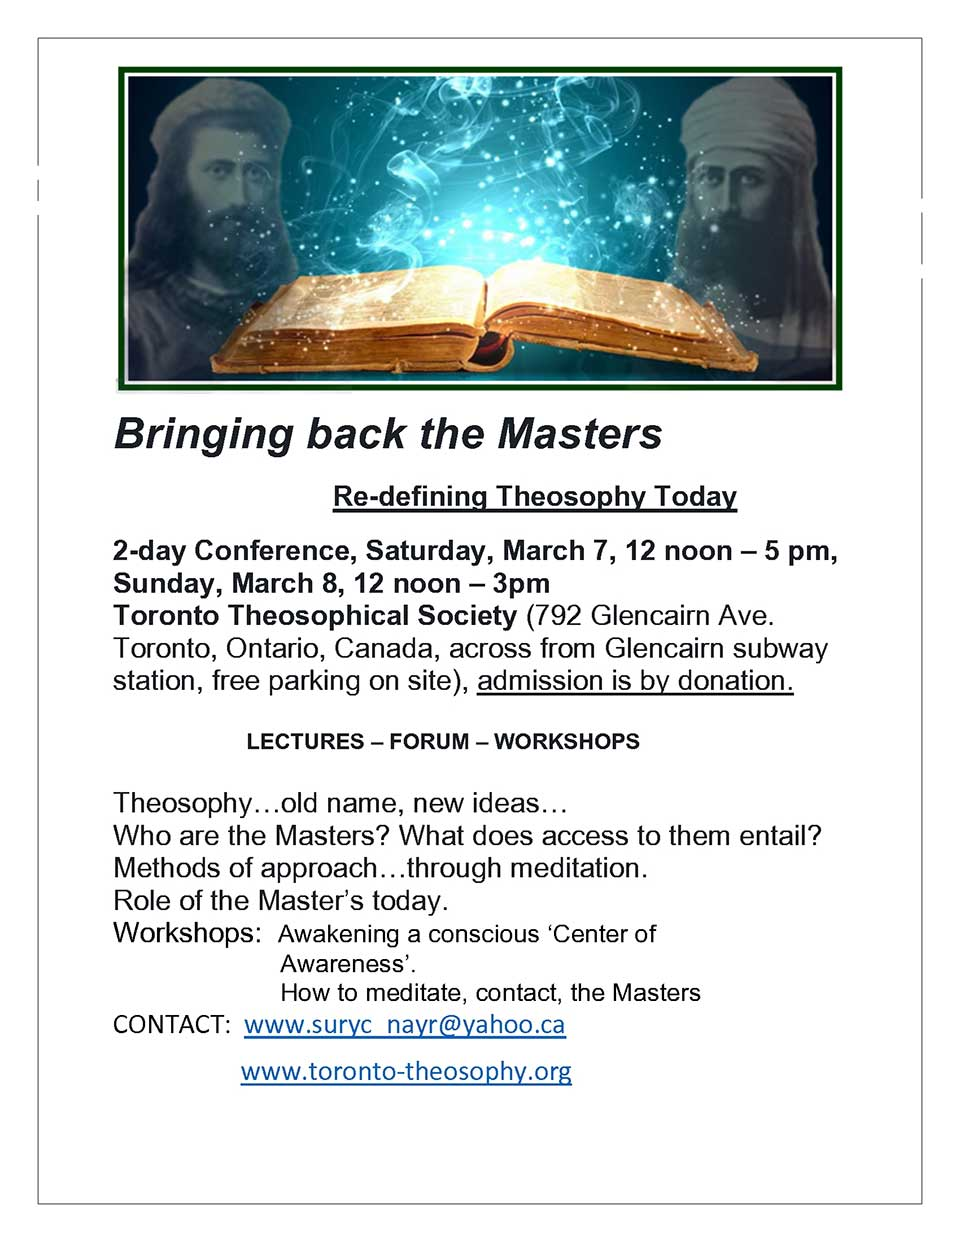 bringing back the masters re-defining theosophy today 2 day conference flyer